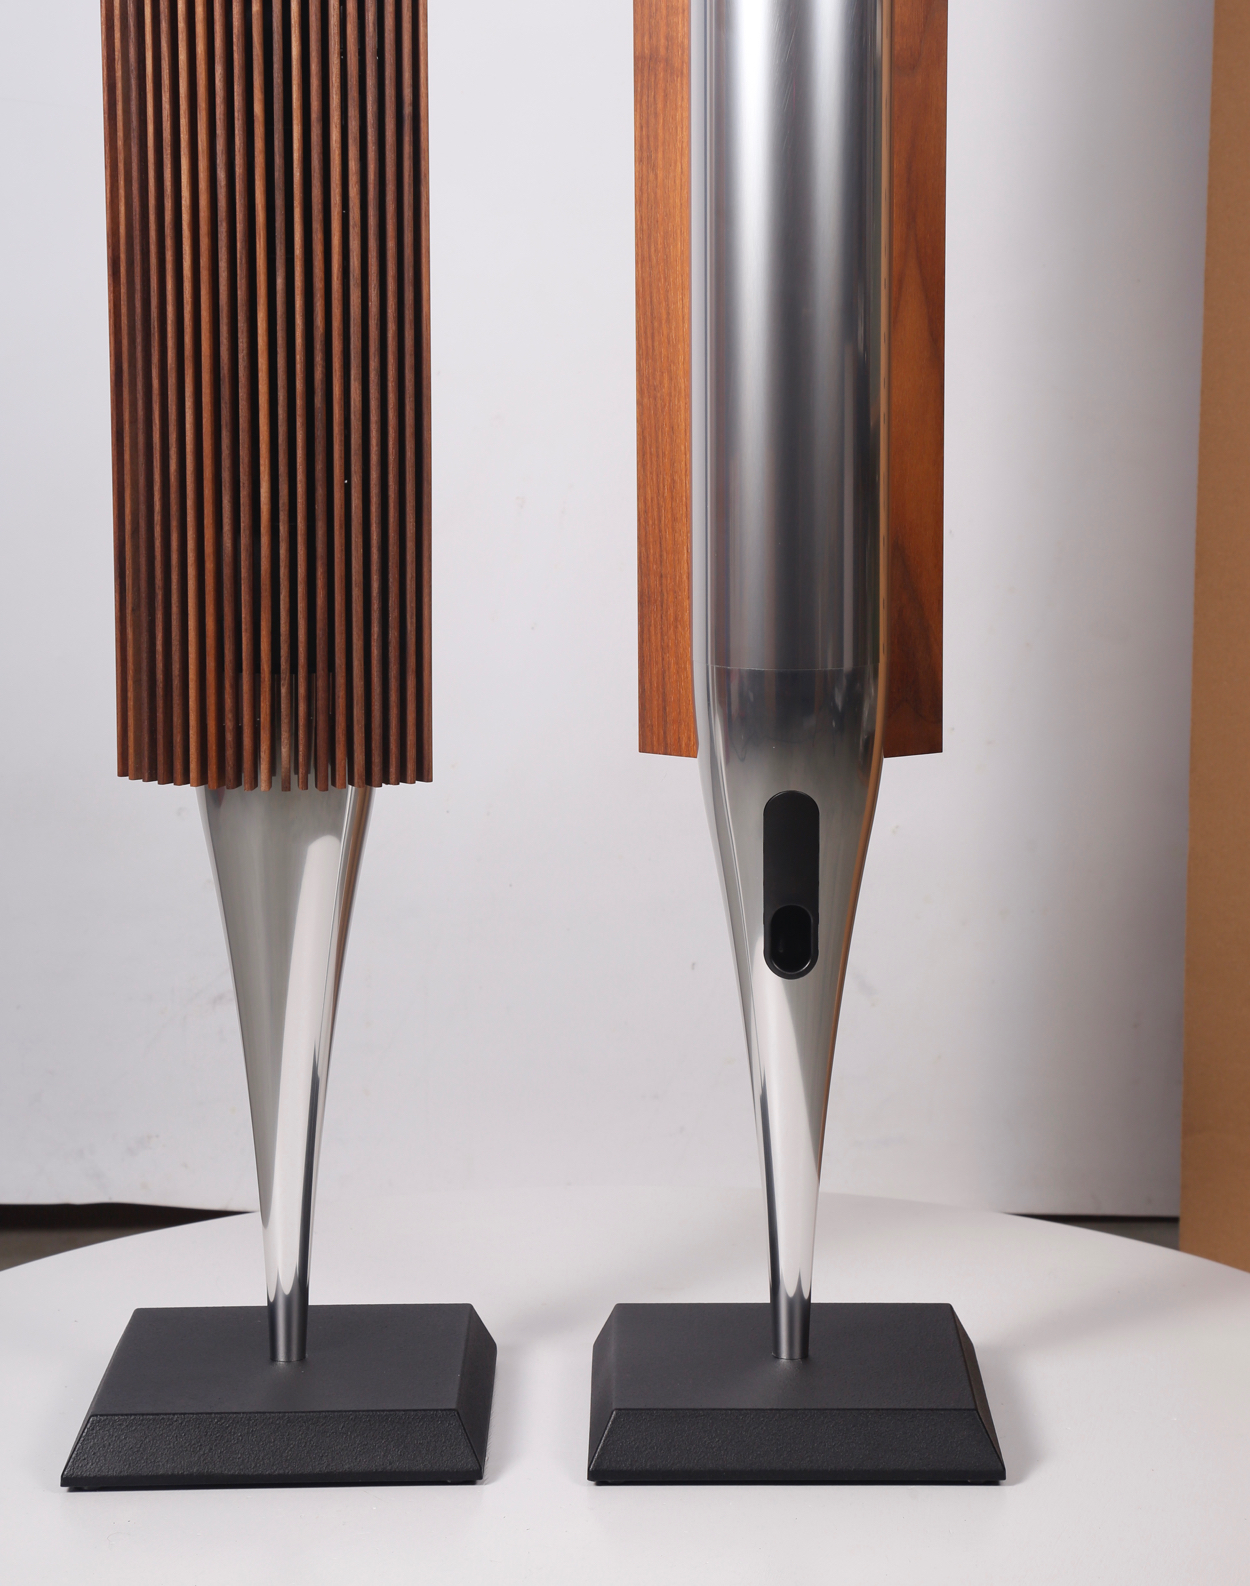 BeoLab 18 silver speakers